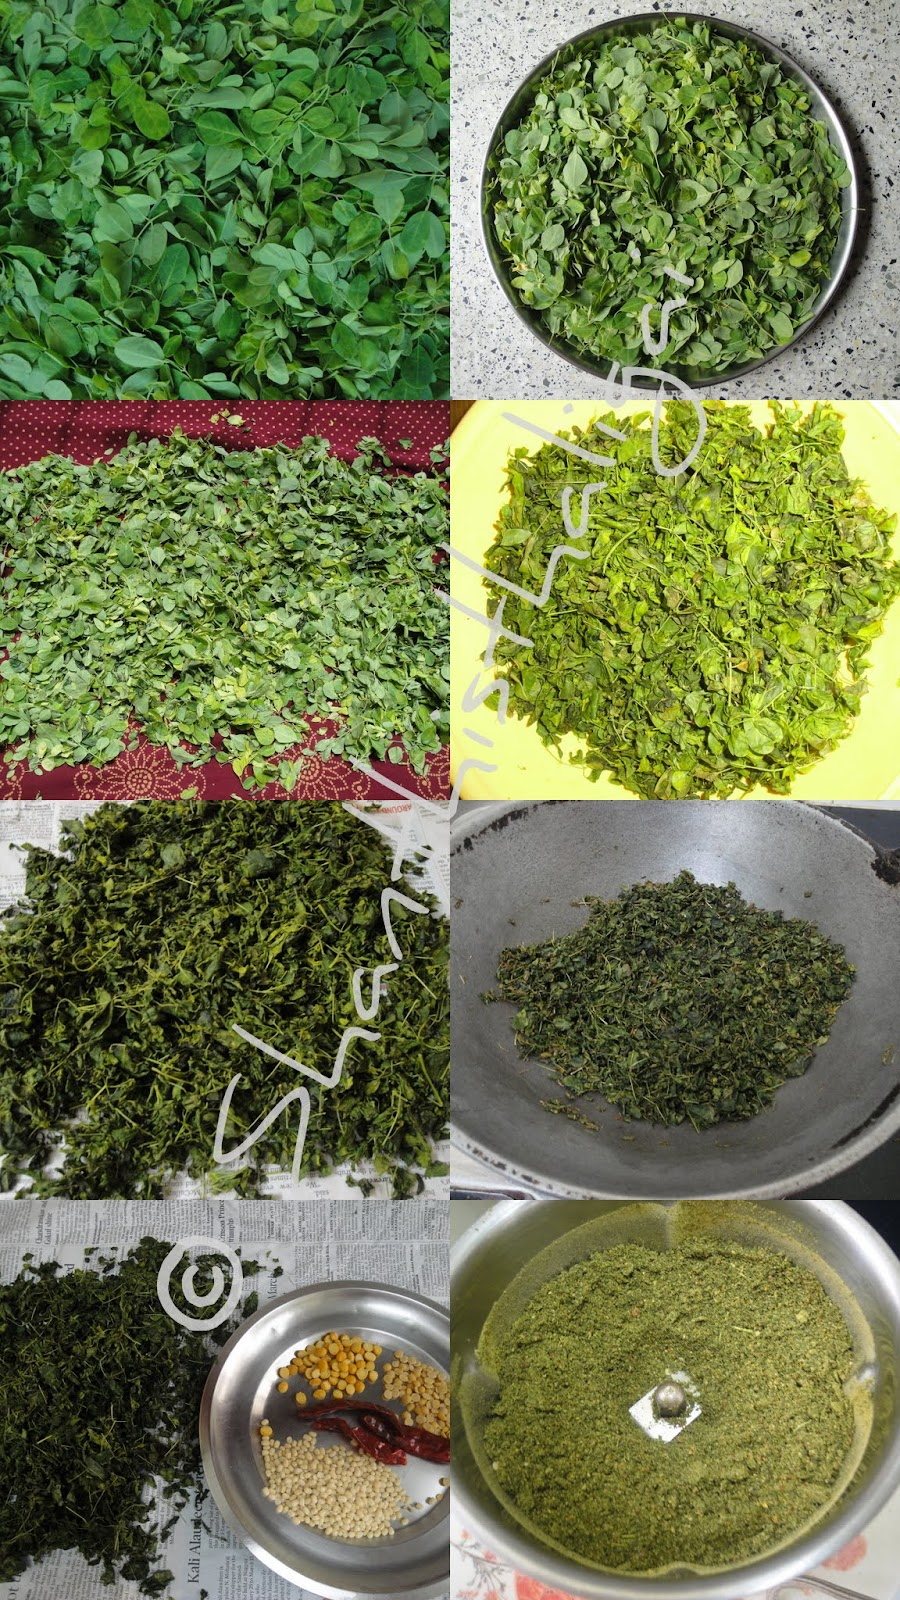 How to make drumstick leaves powder? How to clean murungai ilai easily? How to make murungai ilai podi?